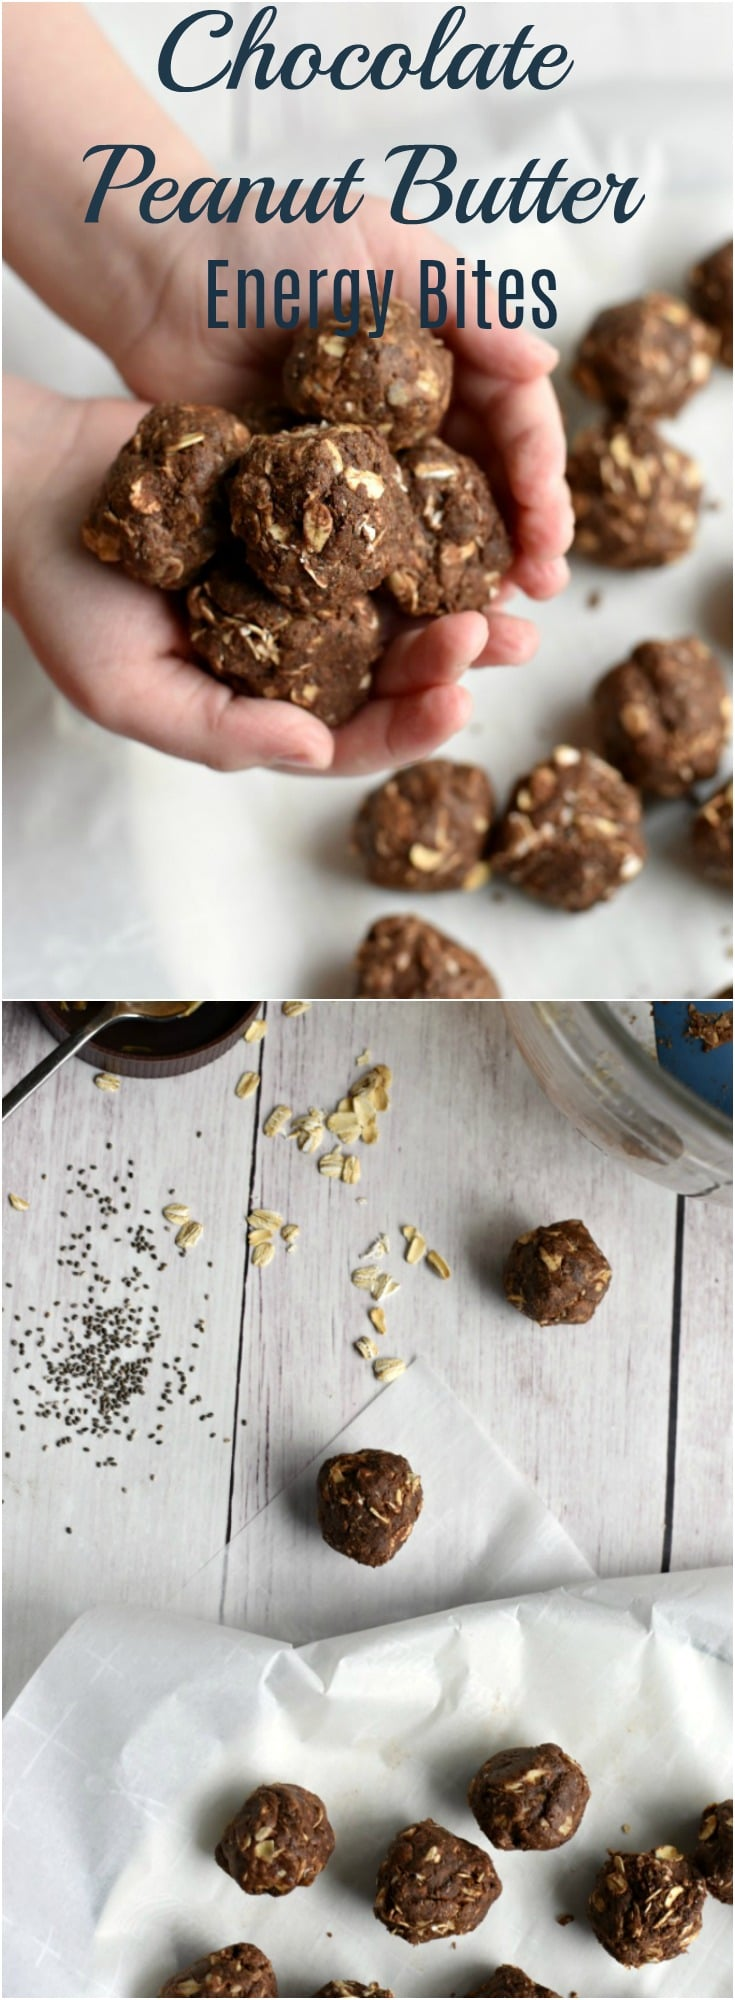 These easy to make chocolate peanut butter energy bites are the perfect to-go snack when you need something healthy yet want something sweet! 